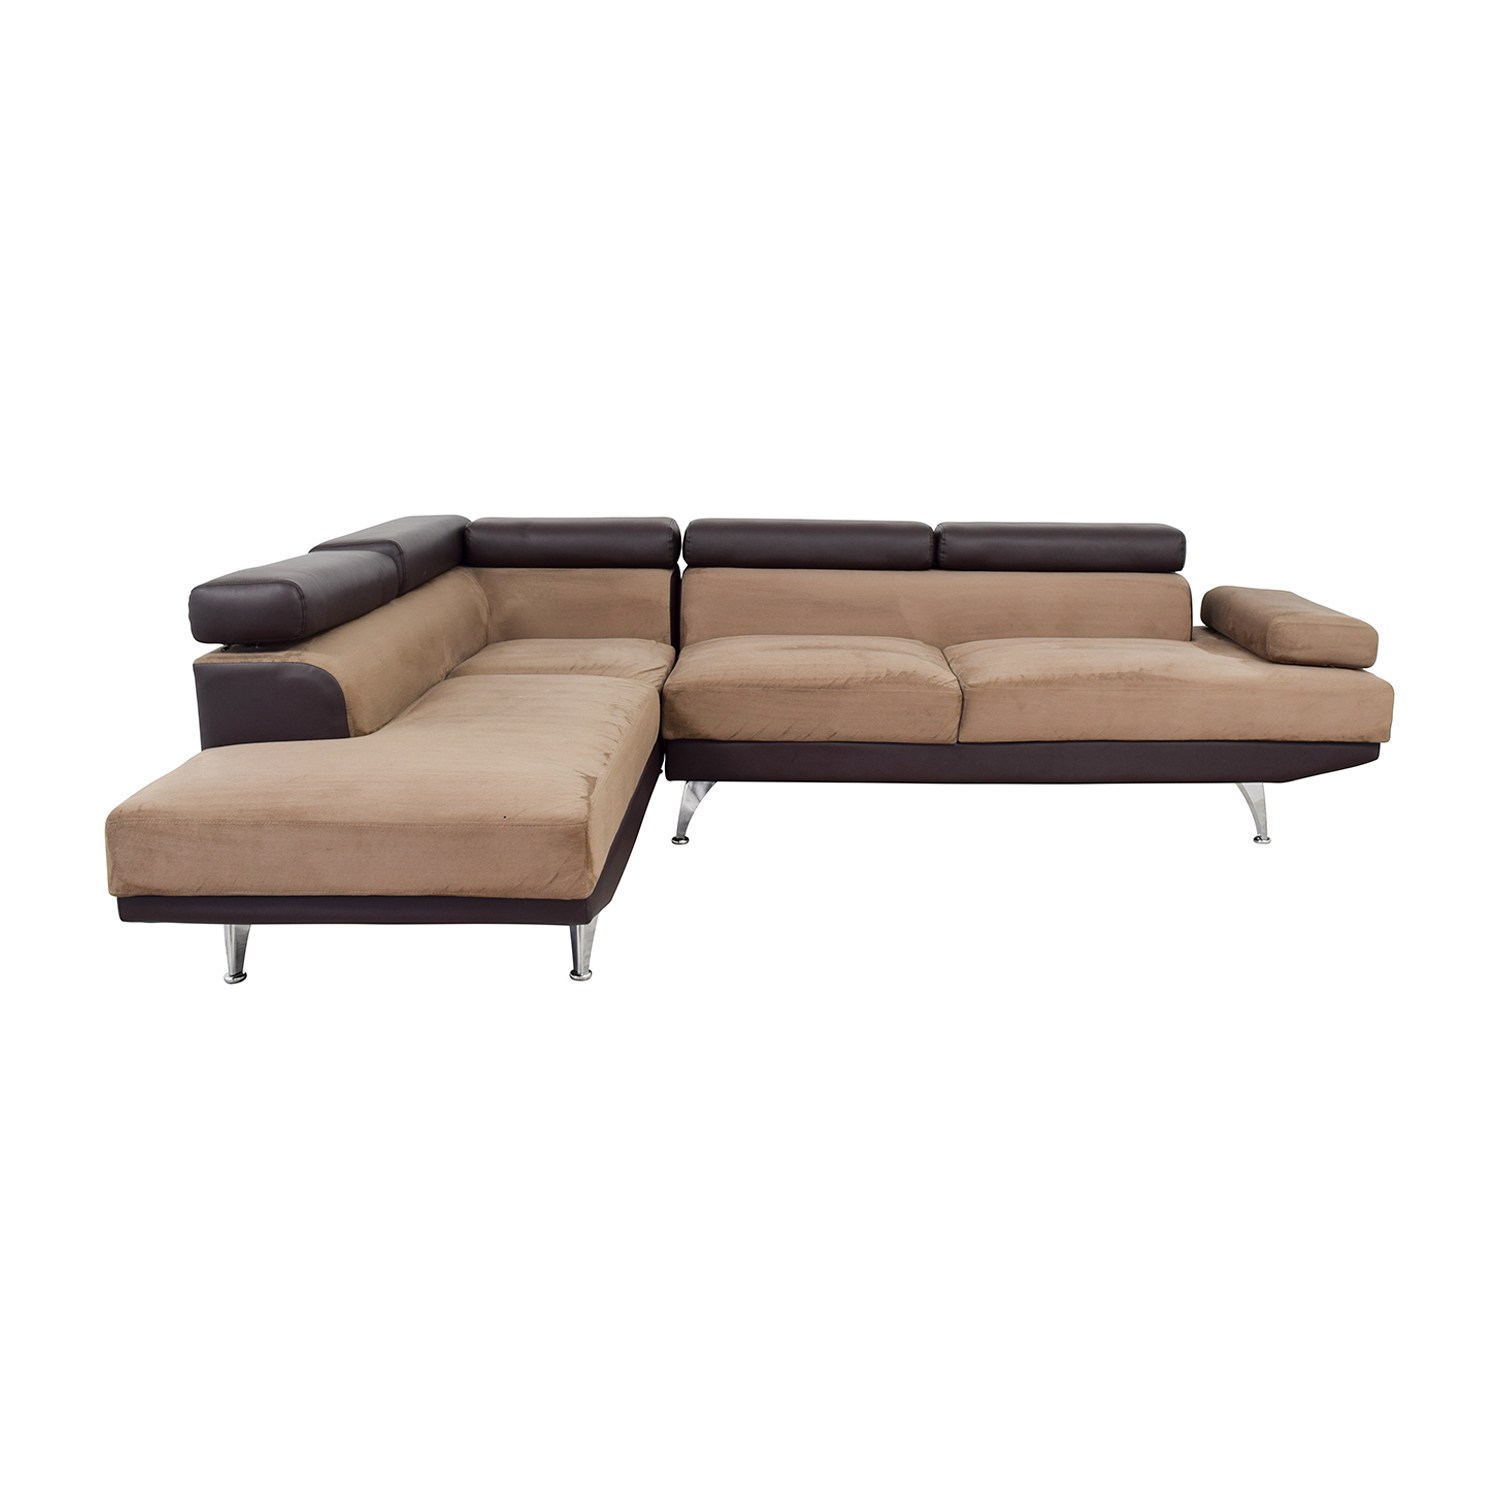 Wayfair Wayfair Berardi Brown Leather and Tan Fabric L-Shaped Sectional discount